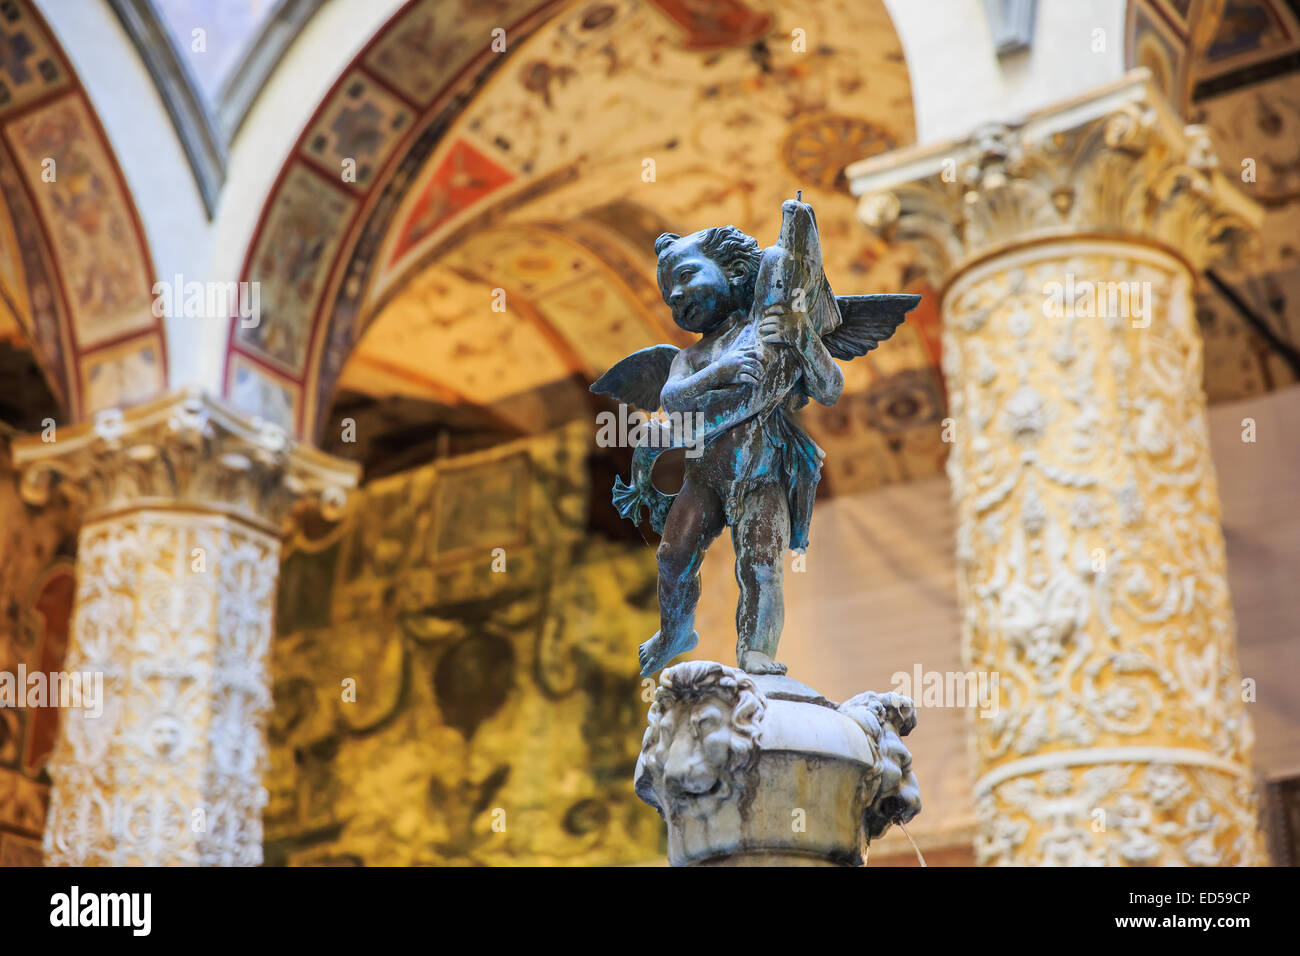 Statue of Putto with Dolphin, Palazzo Vecchio. Florence, Italy - Stock Image